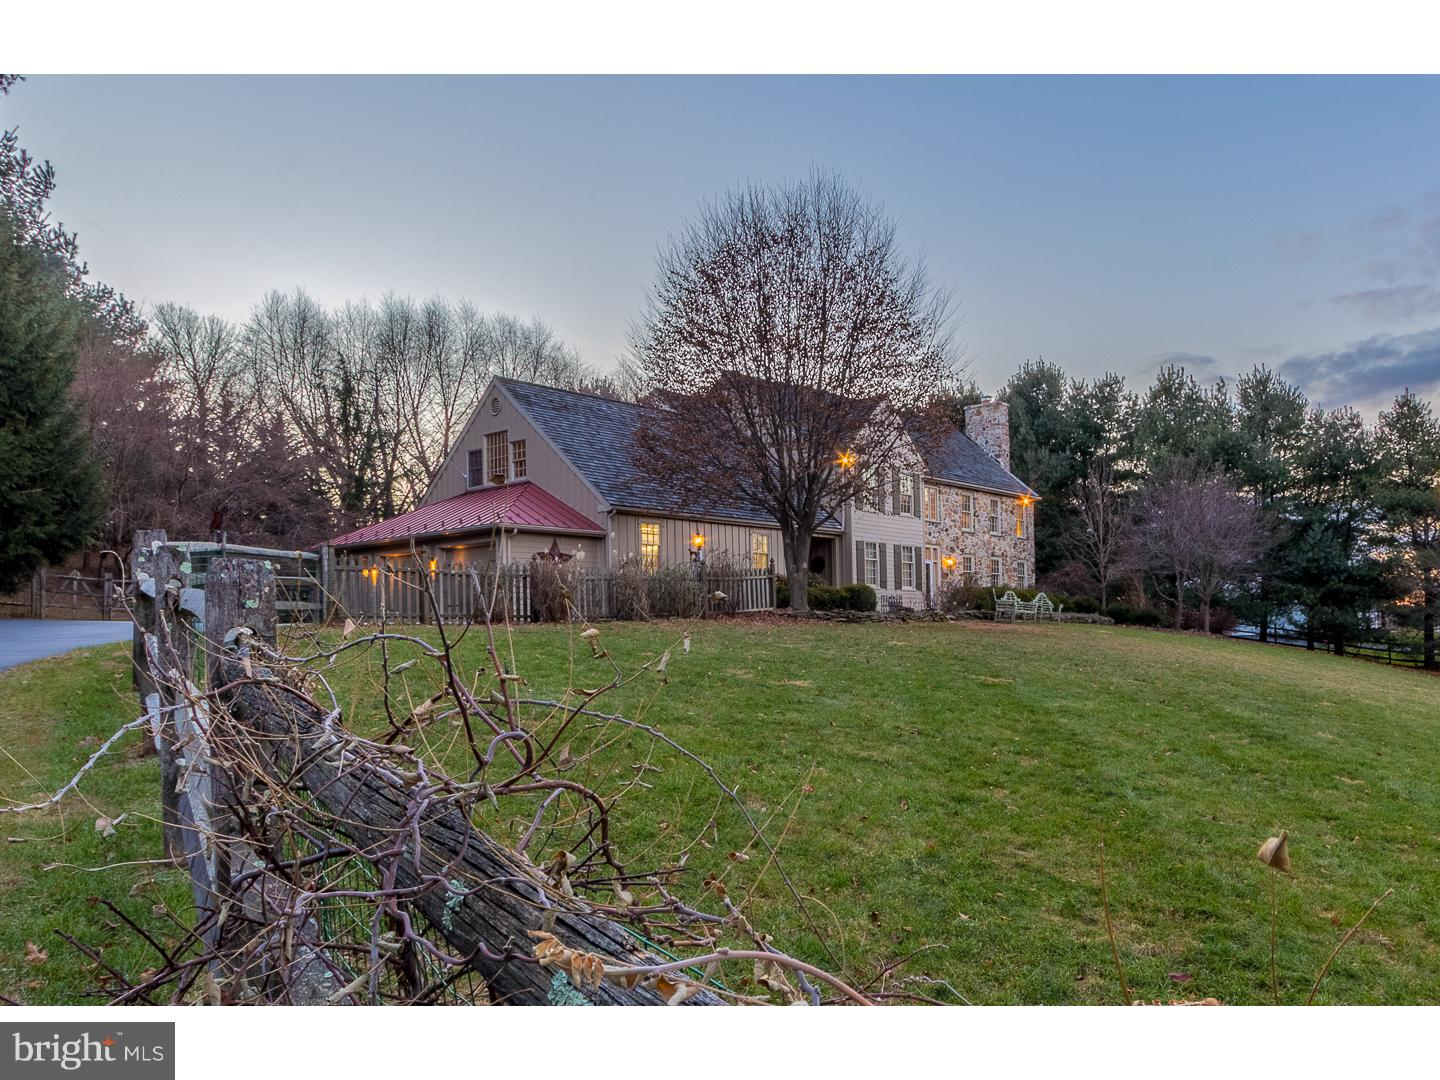 103 HOUNDSTOOTH CIRCLE, CHESTER SPRINGS, PA 19425